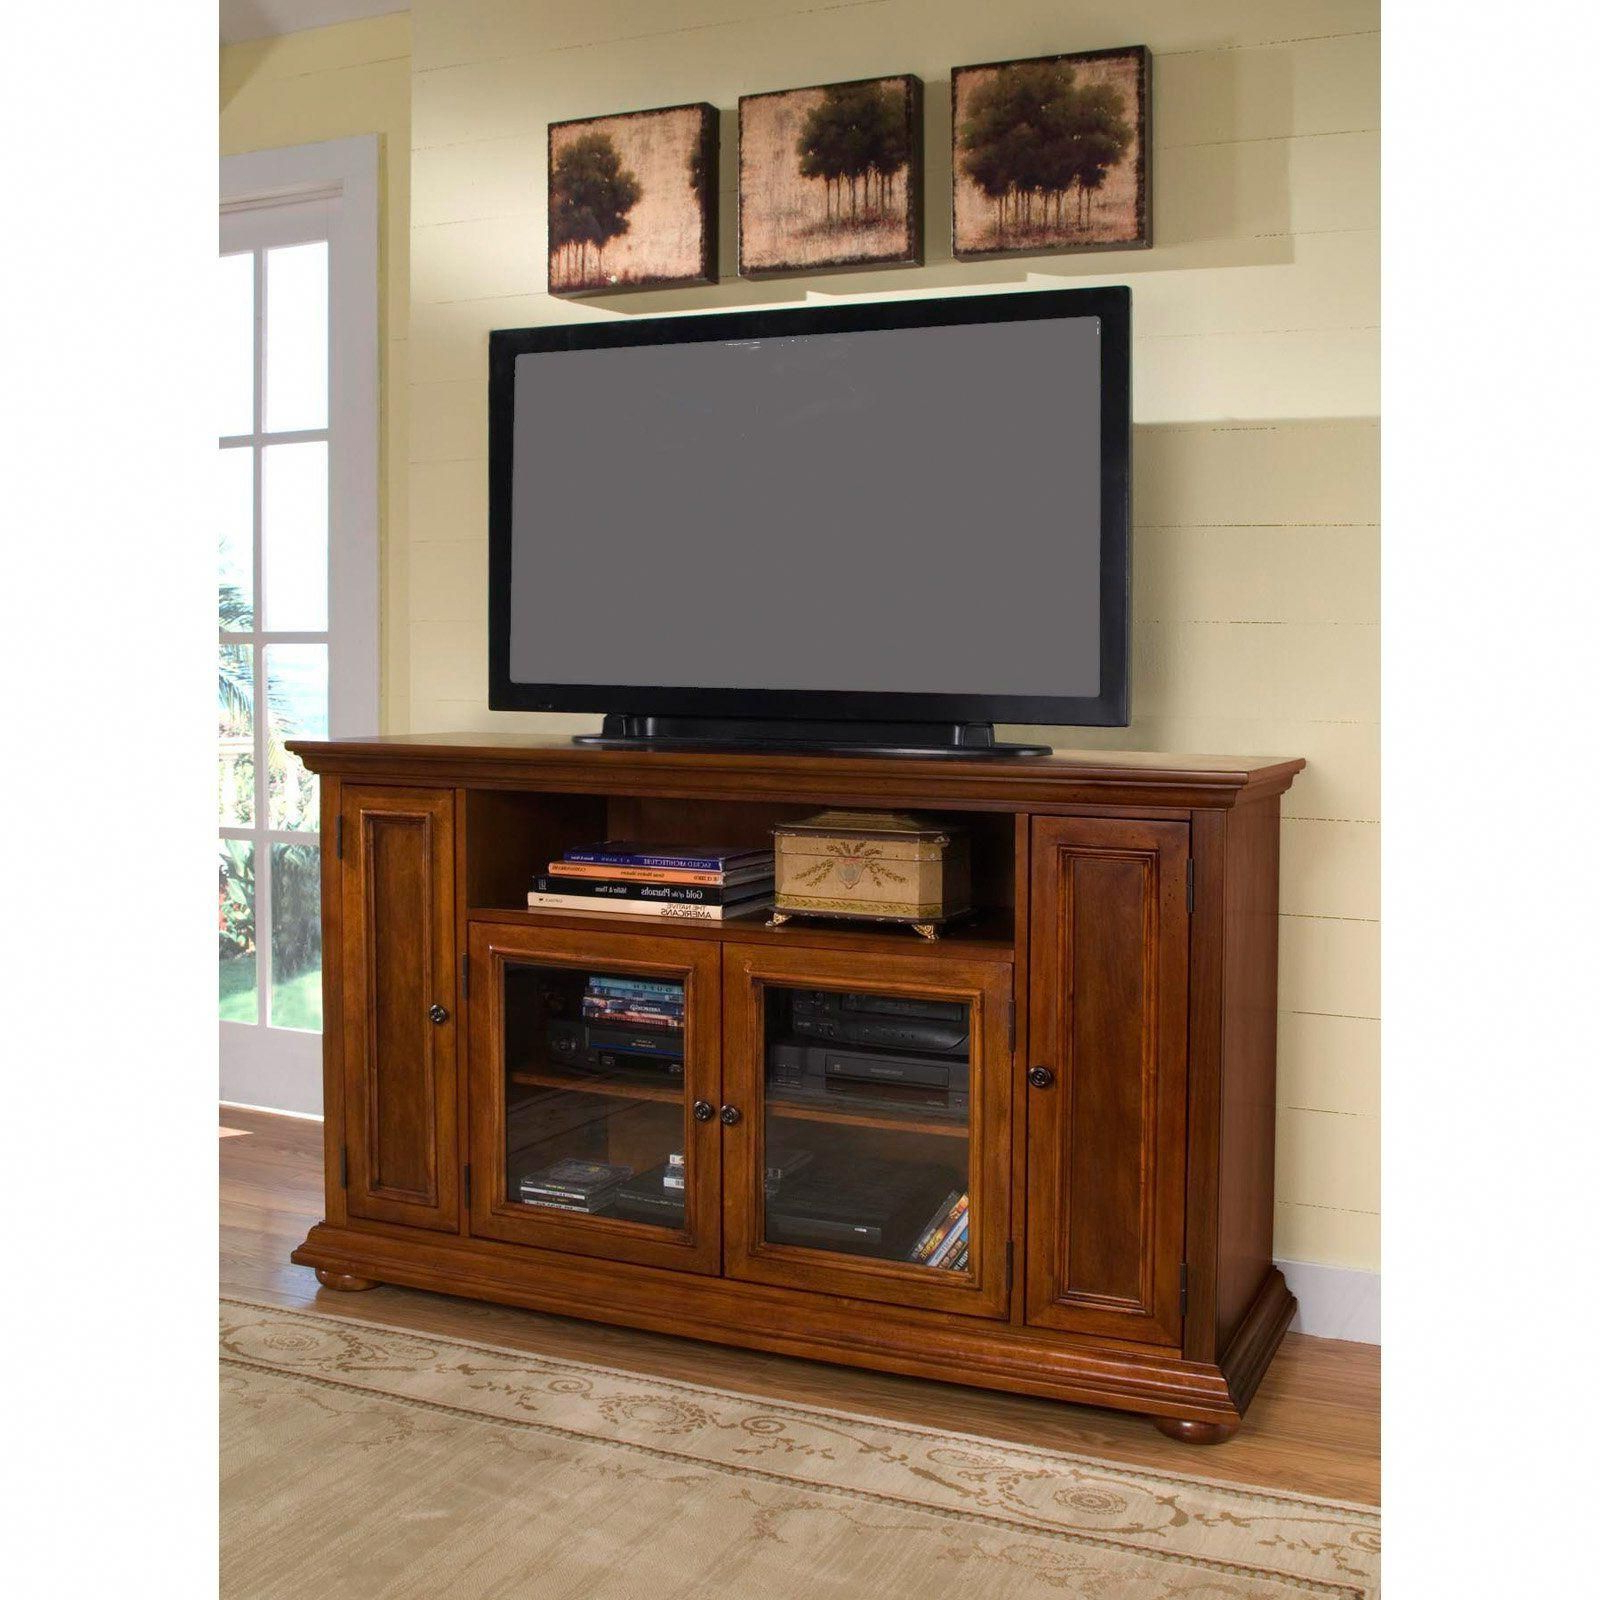 Oak Tv Stands With Glass Doors In Recent Tv Stand Idea. Homestead Tall Tv Stand $429.99 #tvstandideas (Gallery 15 of 20)